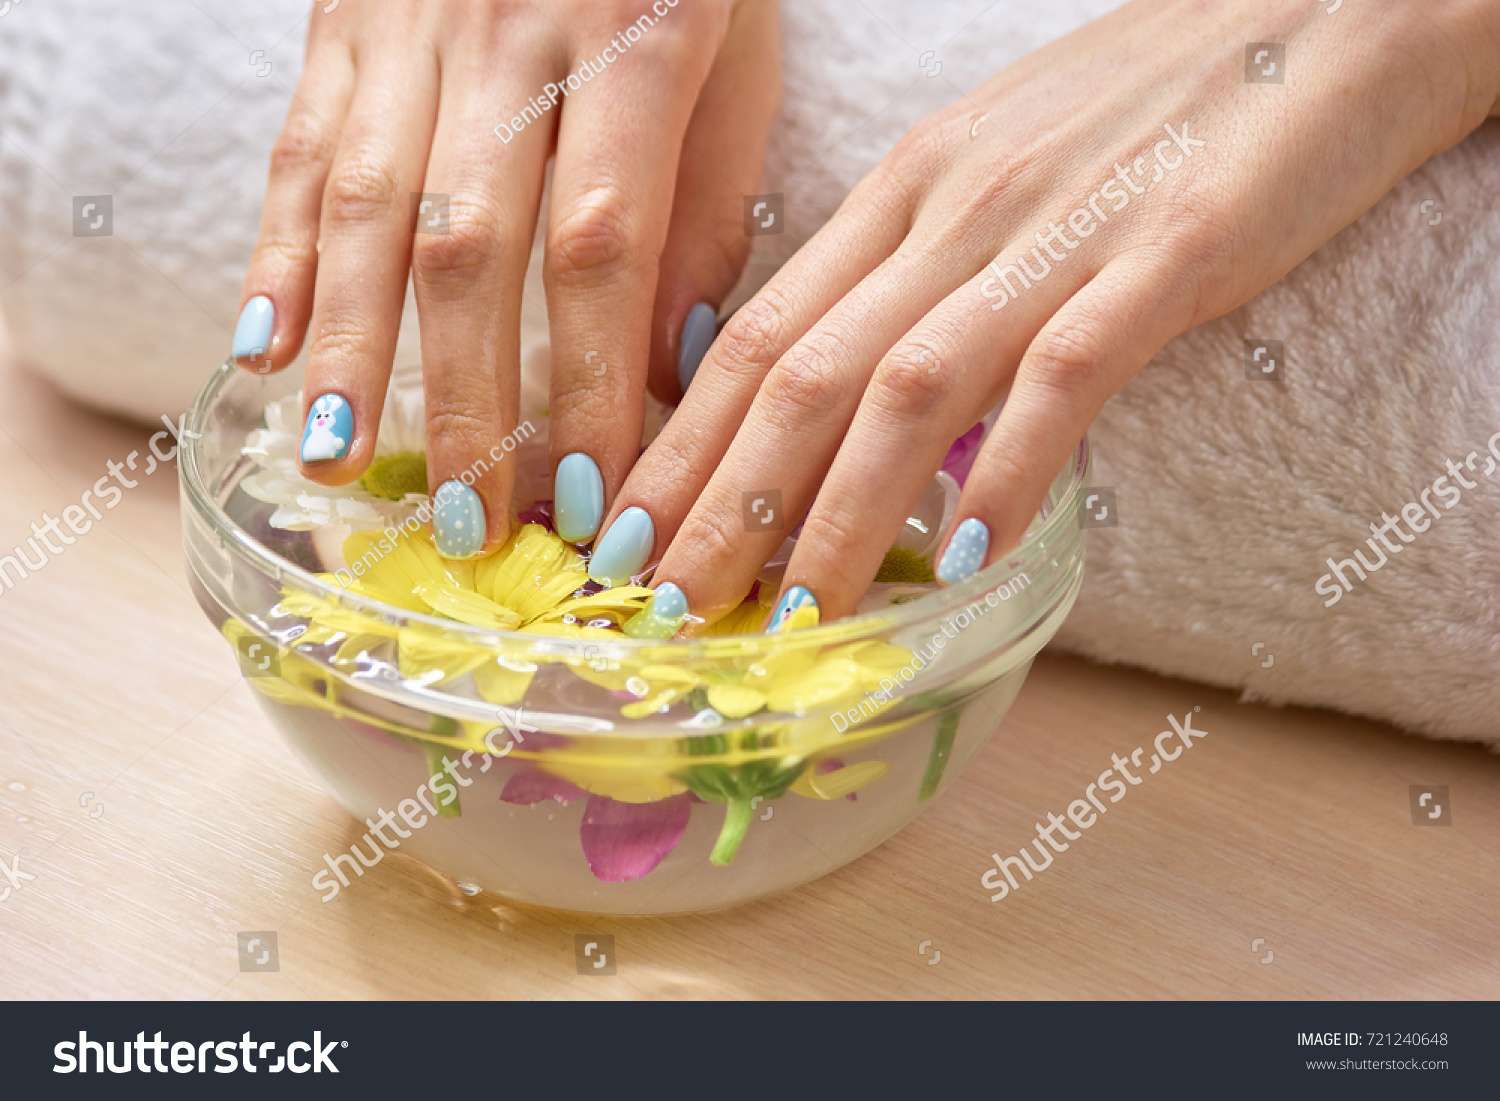 Female fingernails soaking hand bath beautiful stock photo female fingernails soaking in hand bath beautiful young woman hands with winter design nails in prinsesfo Images